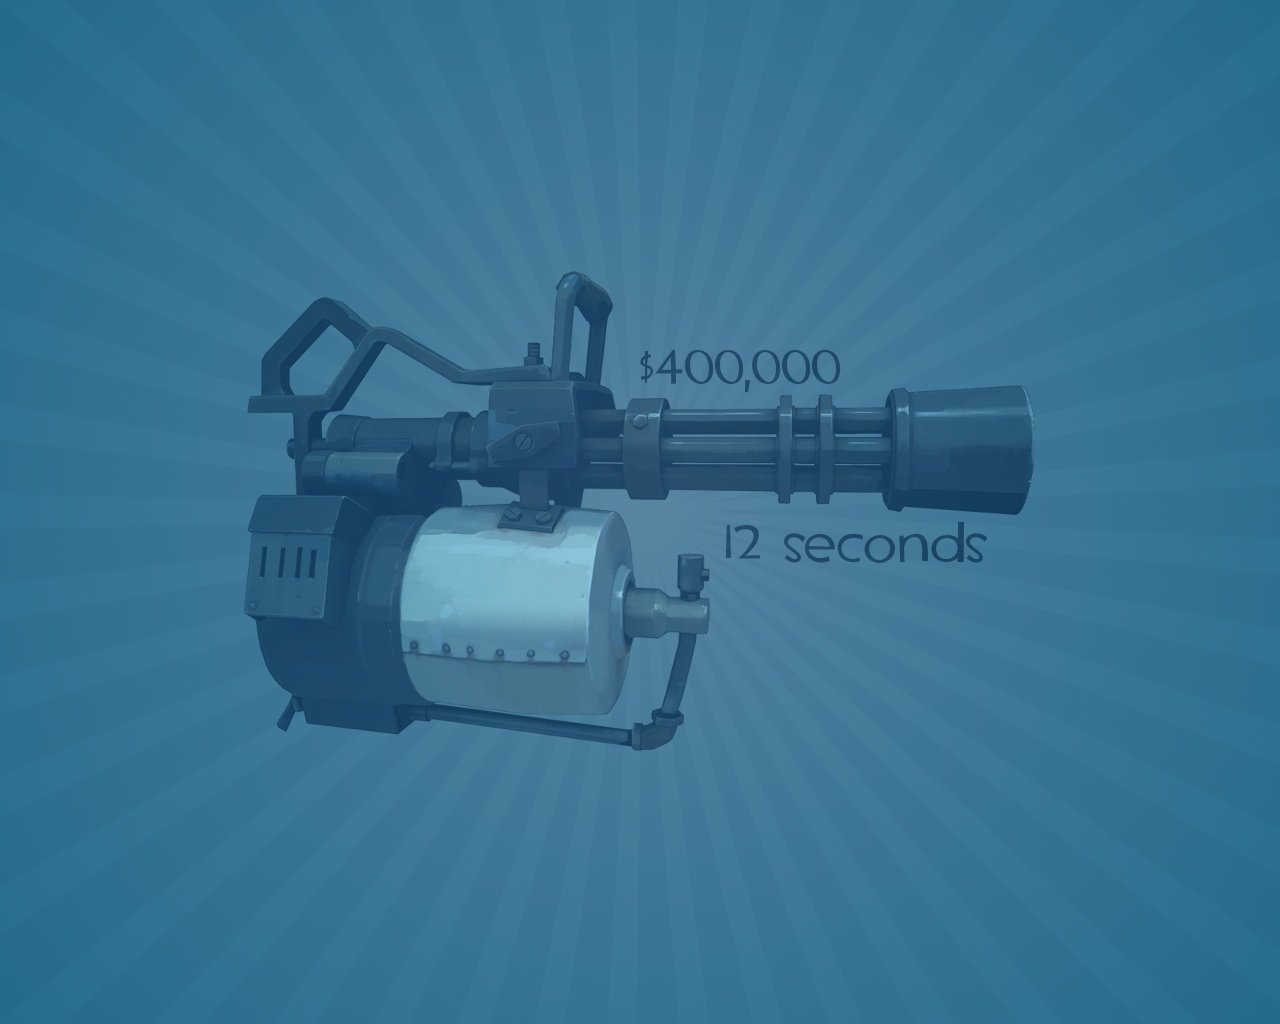 minigun video games valve HD Wallpaper